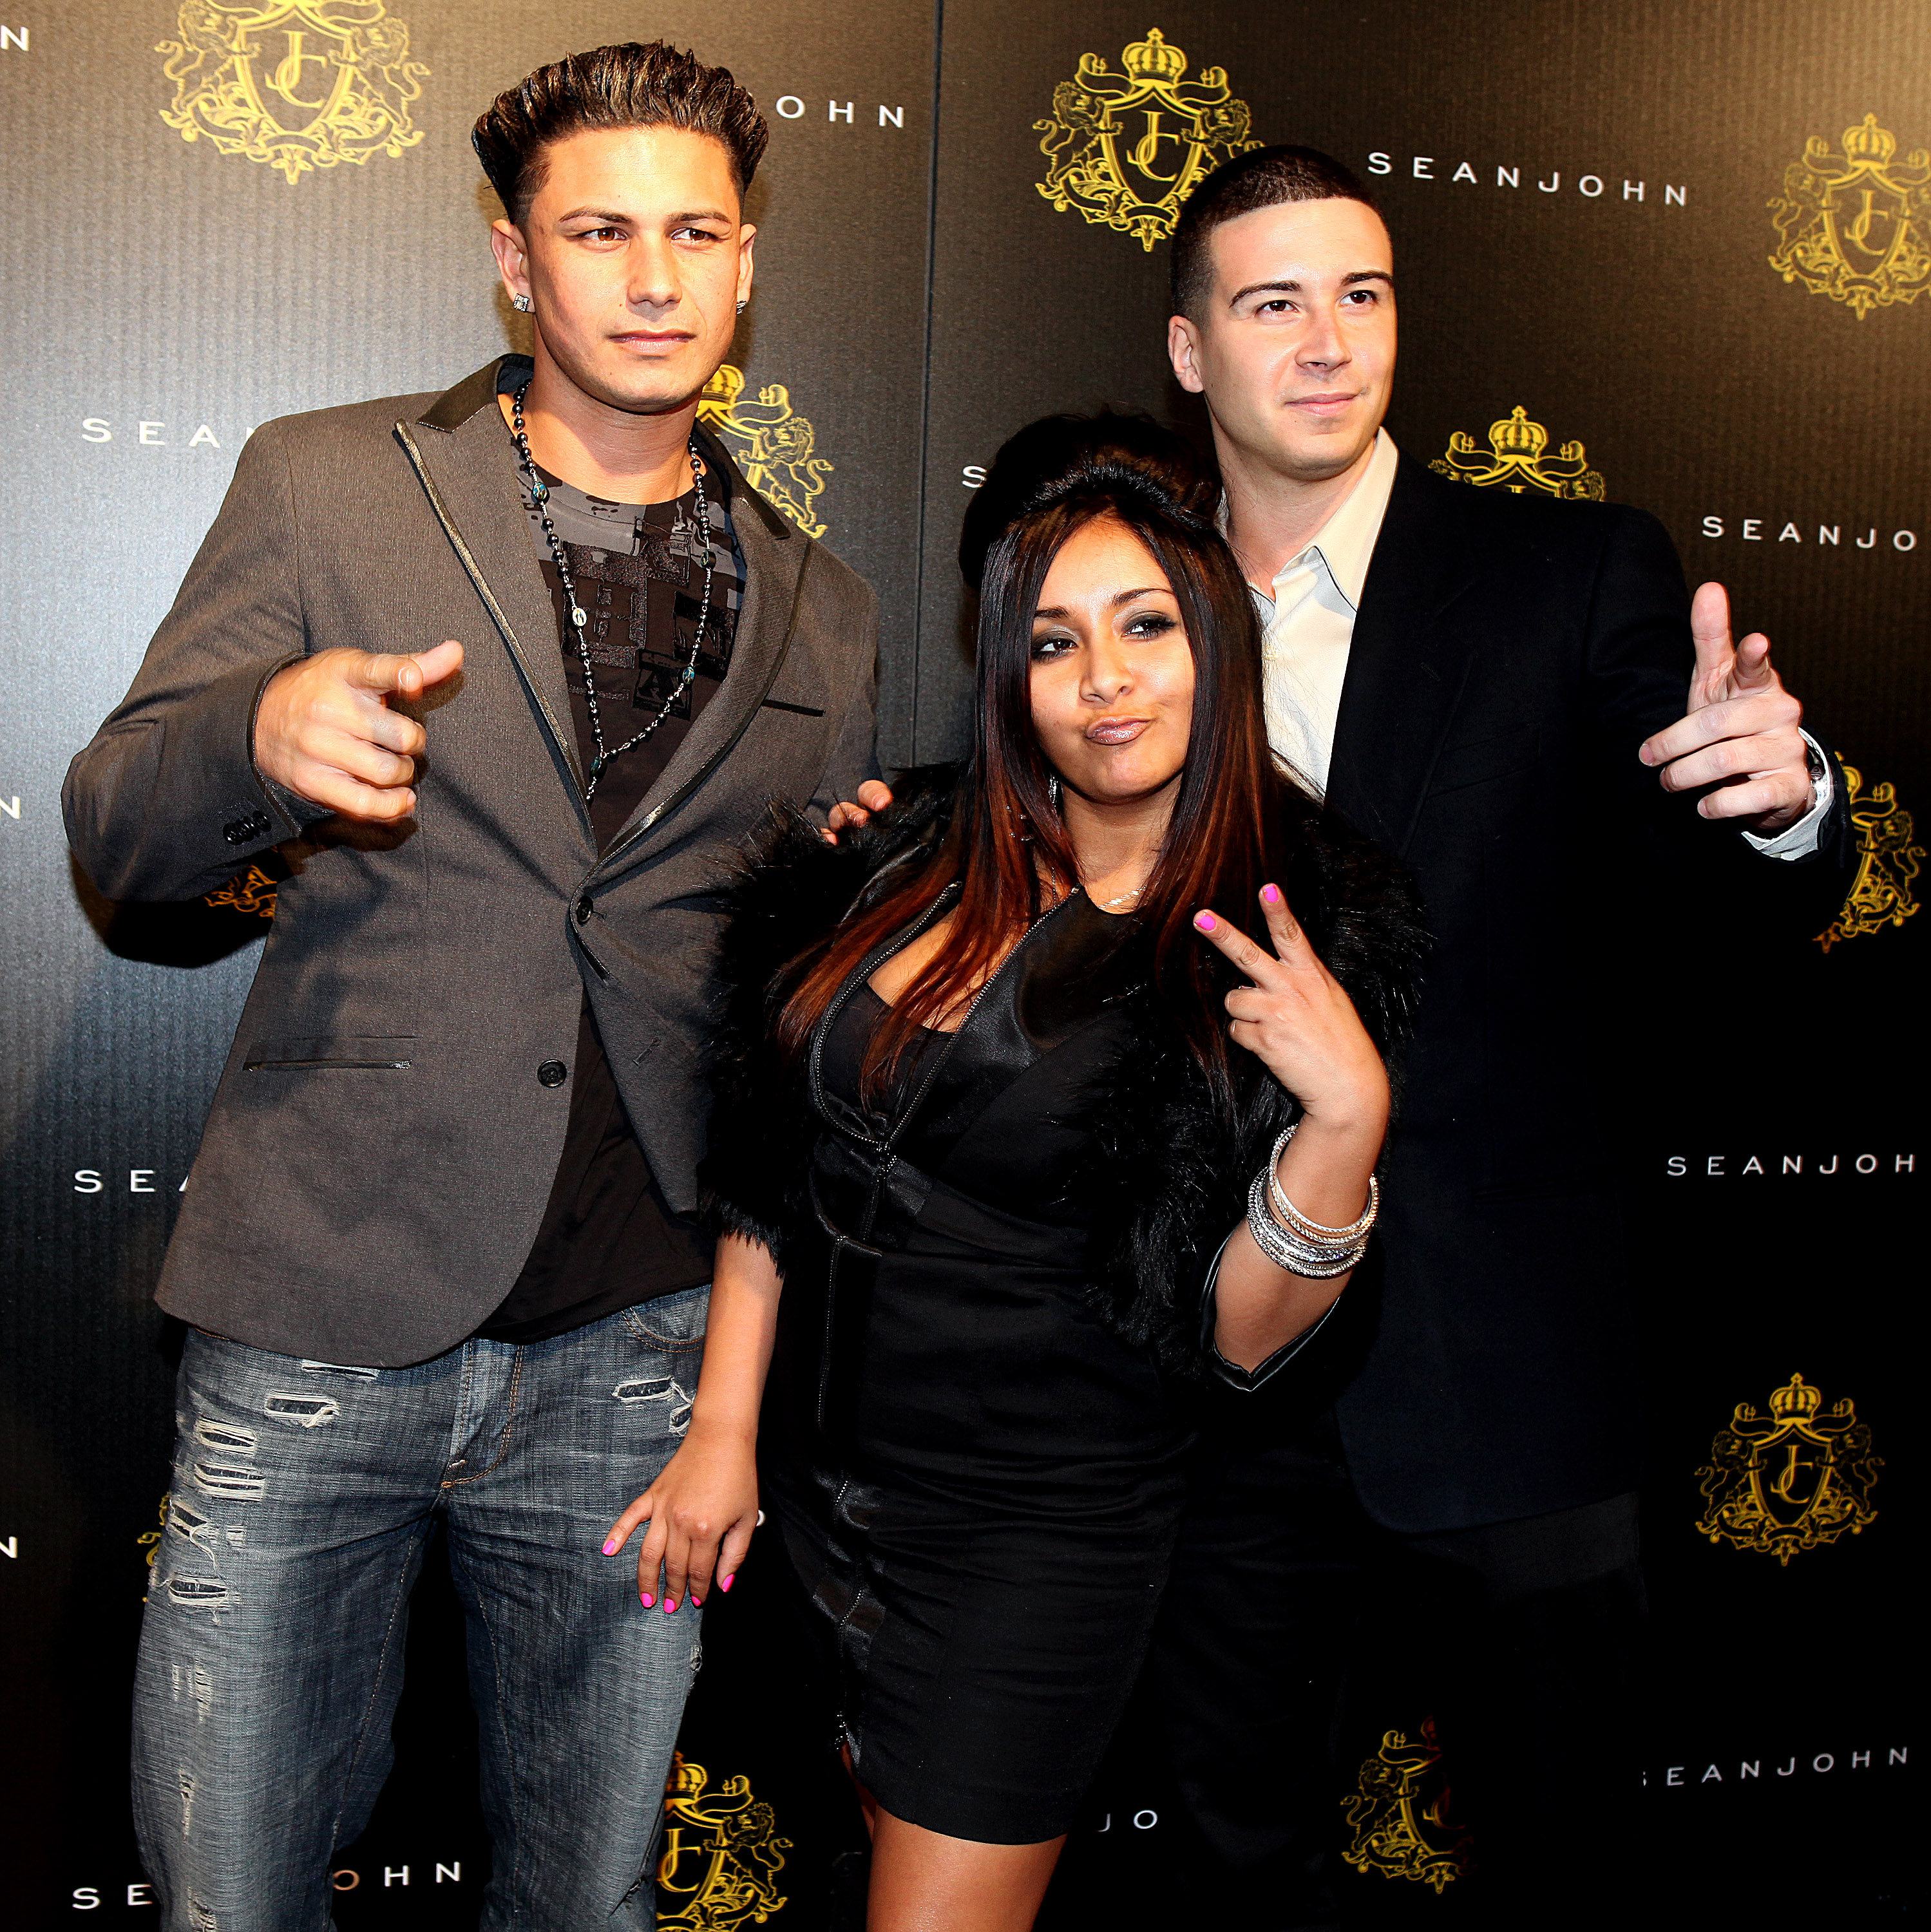 It's T-Shirt Time! Hot Shots Of 'Jersey Shore' Star Pauly D